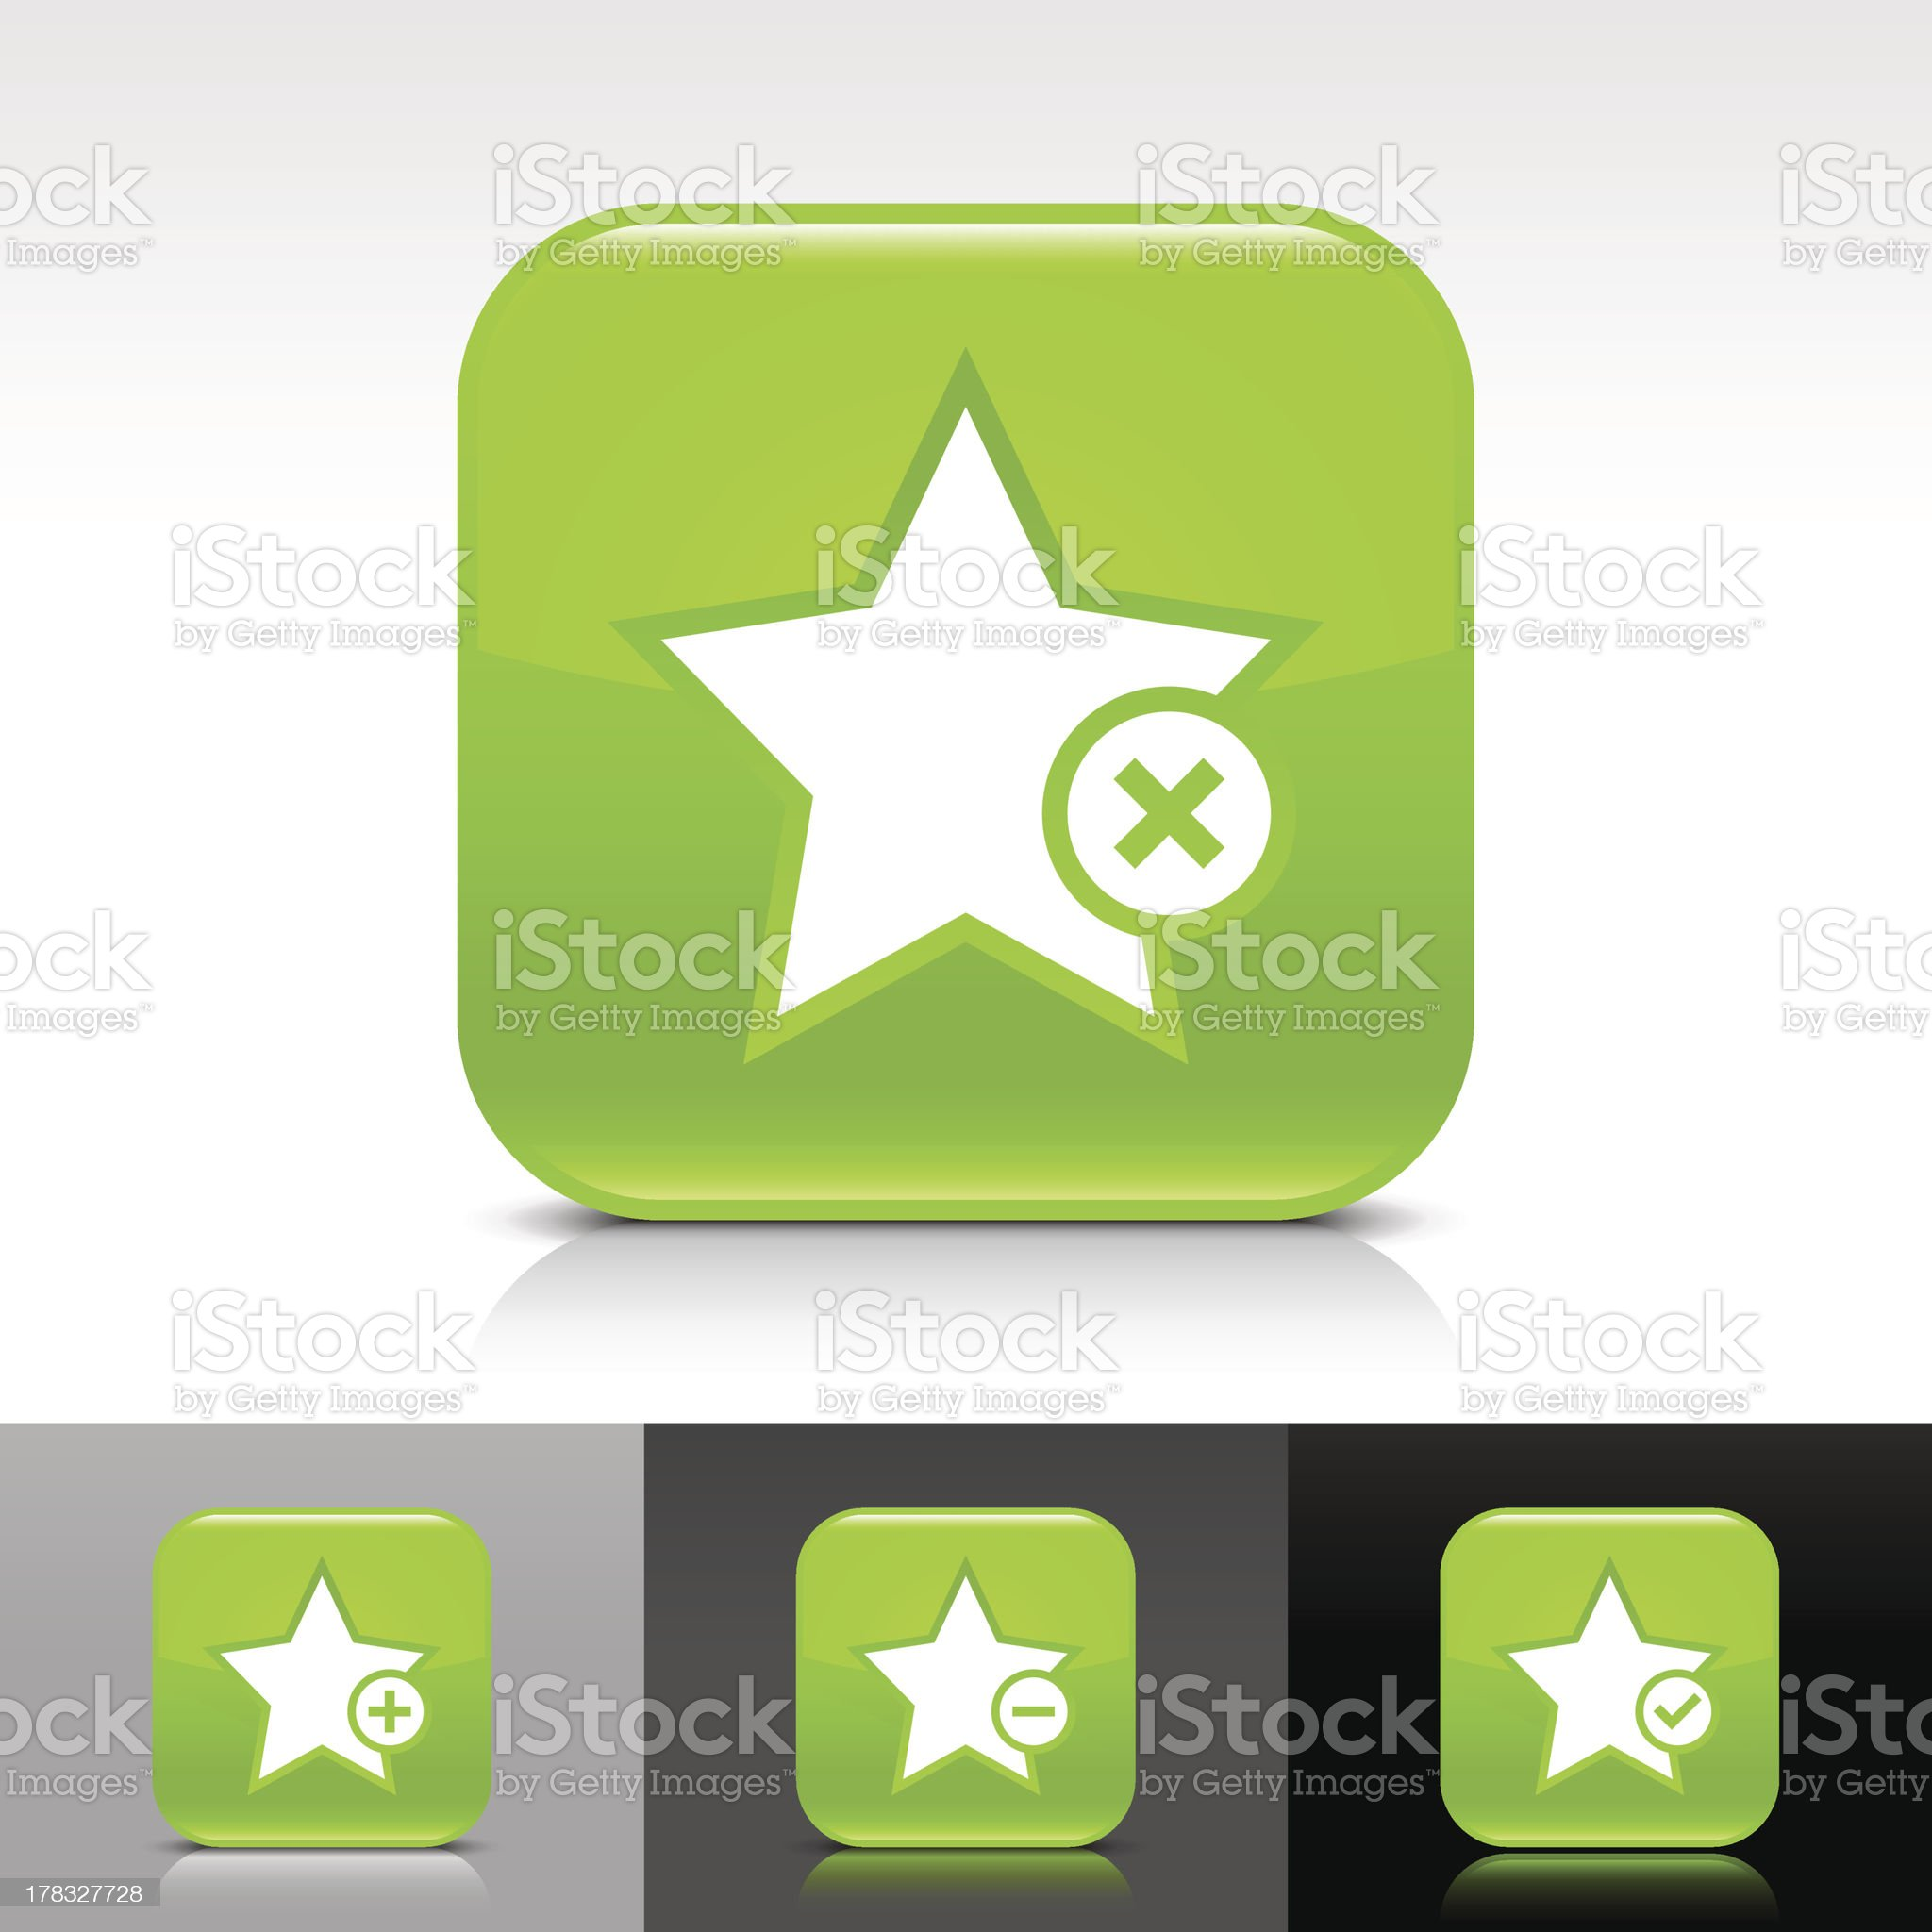 Green icon star sign glossy rounded square web button royalty-free stock vector art